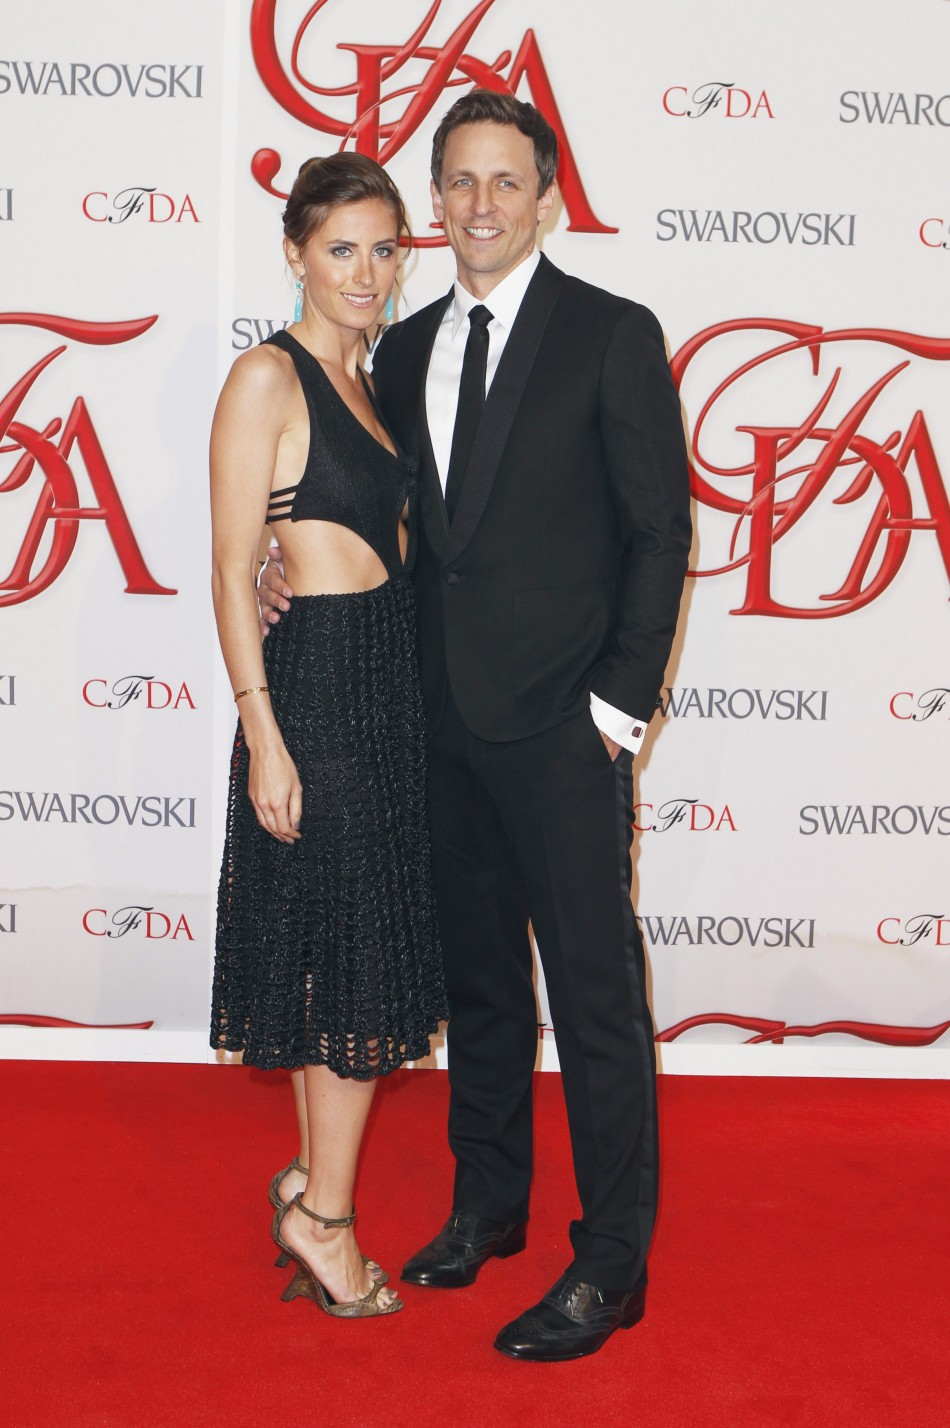 Comedian Meyers arrives with Ashe to attend the 2012 CFDA Fashion Awards in New York